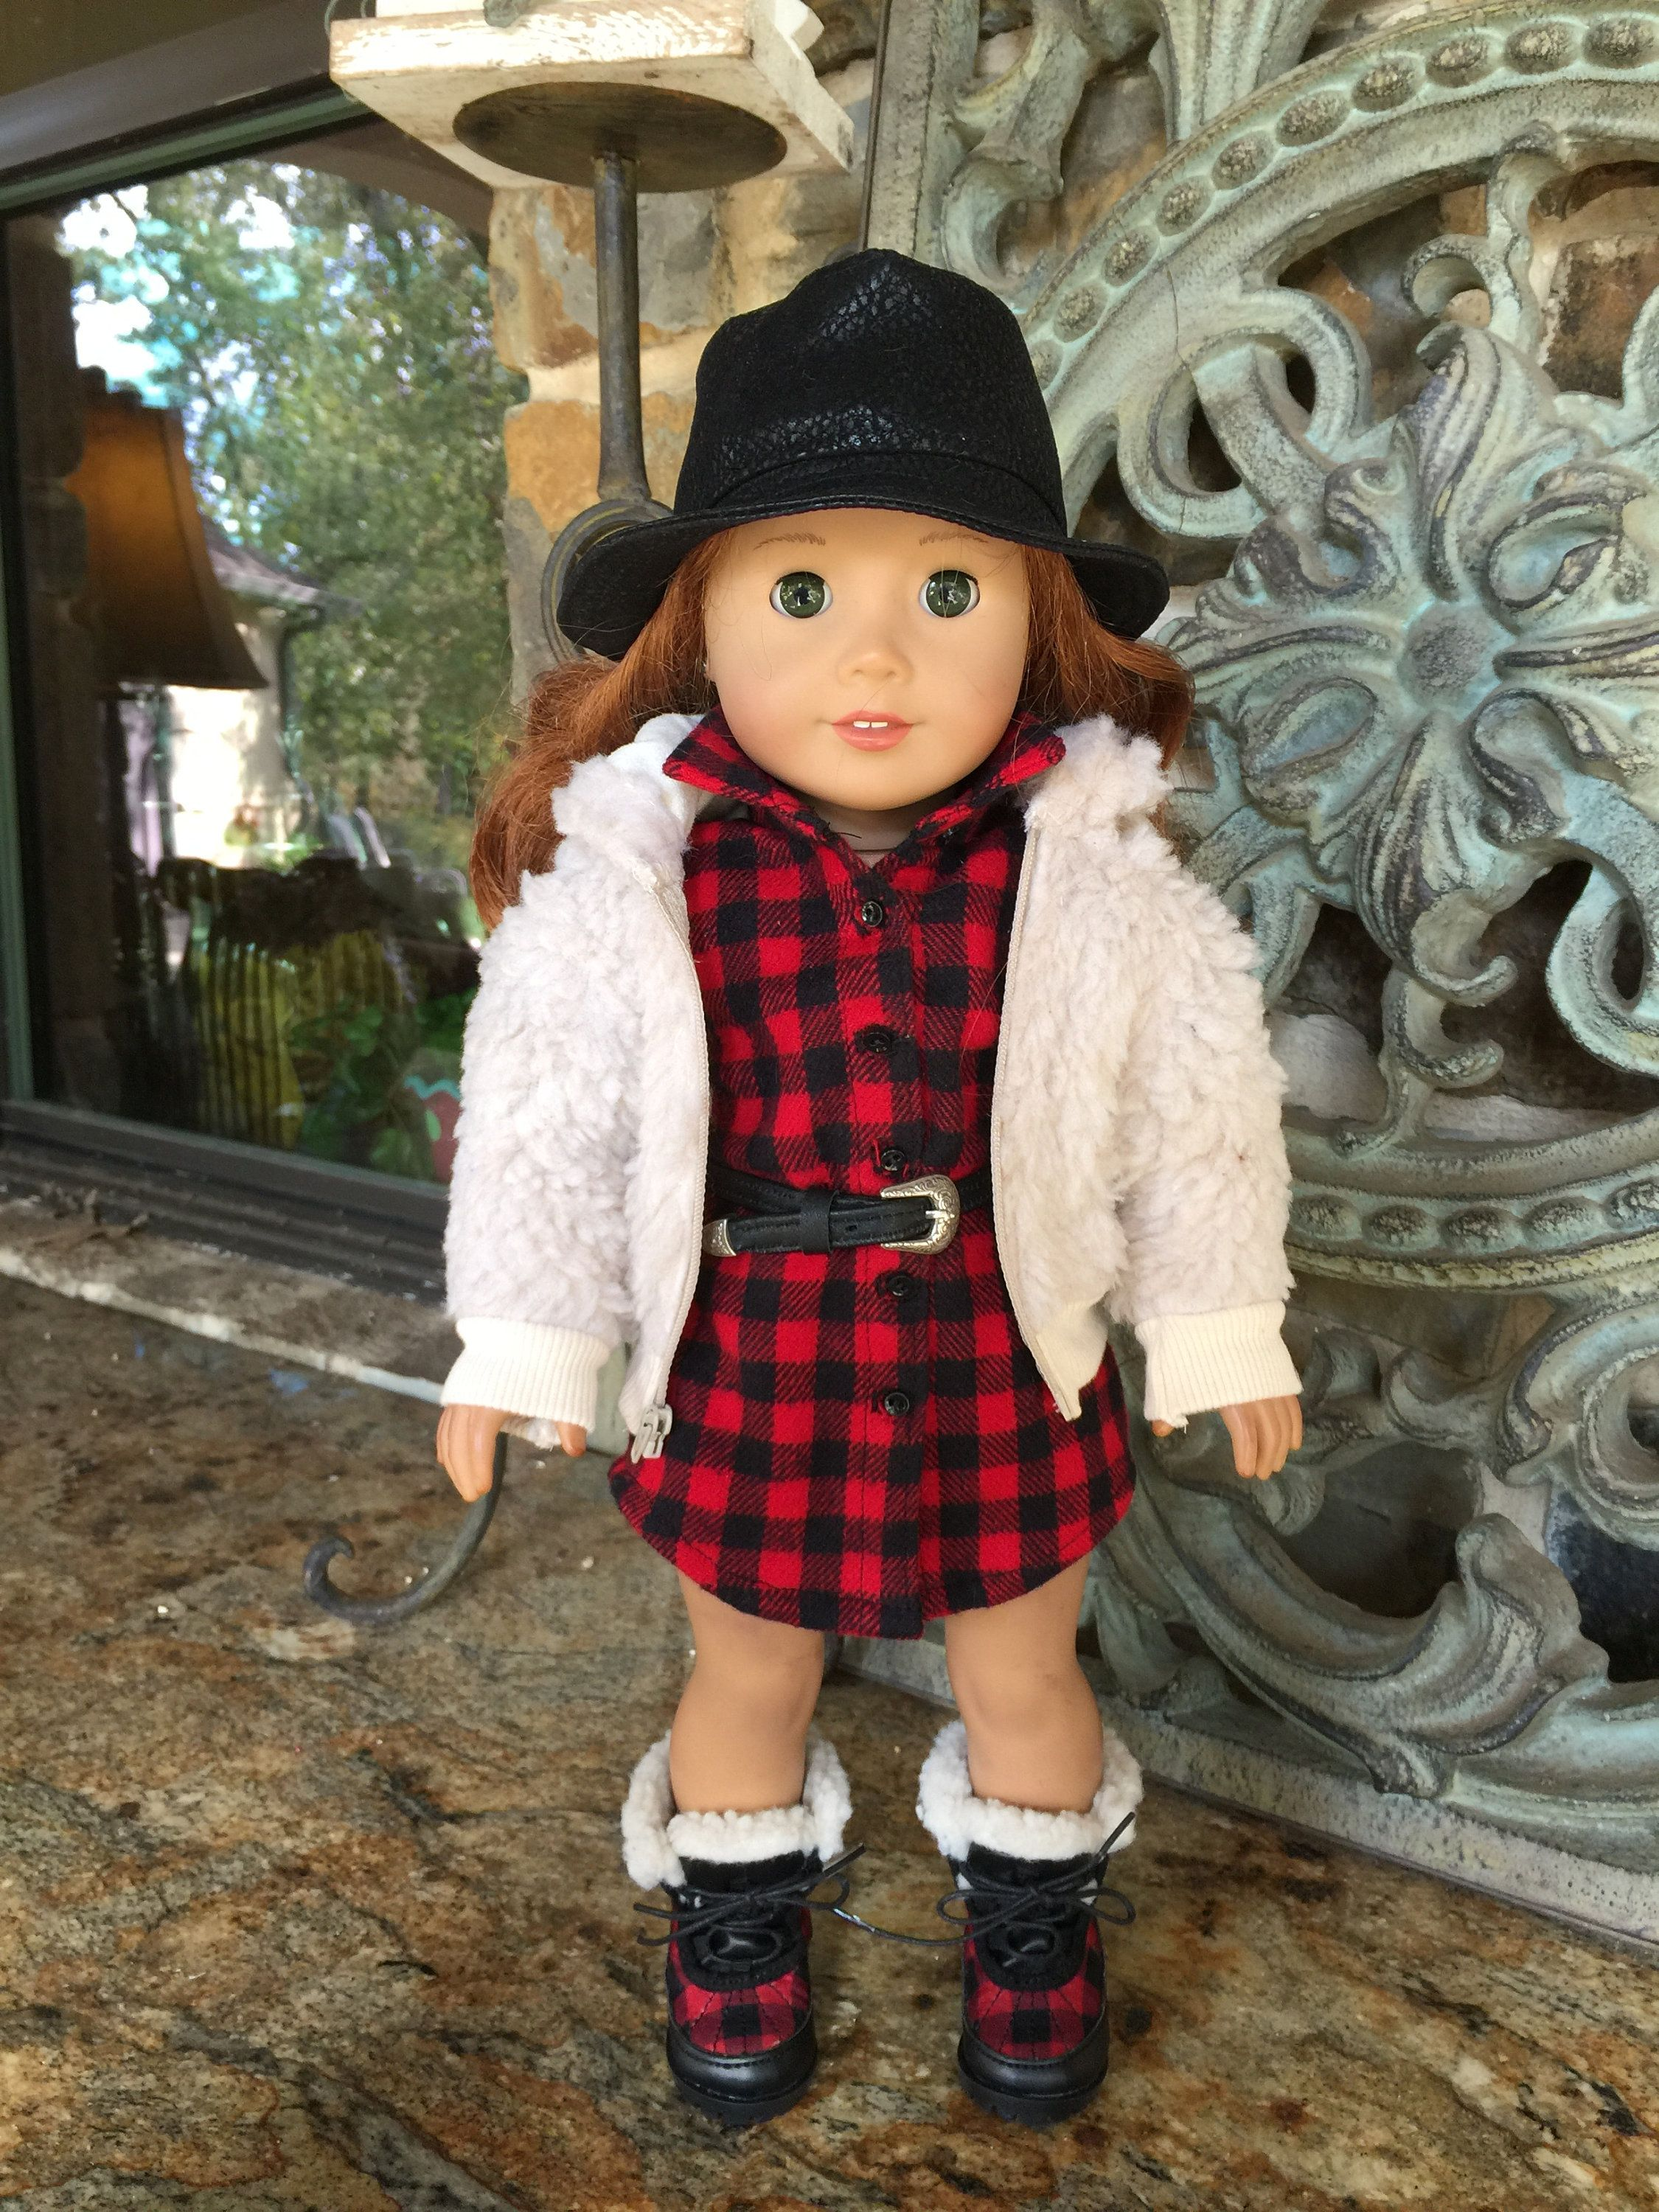 18 inch doll clothes made to fit dolls like the American Girl Doll-Buffalo check tailored dress #18inchdollsandclothes